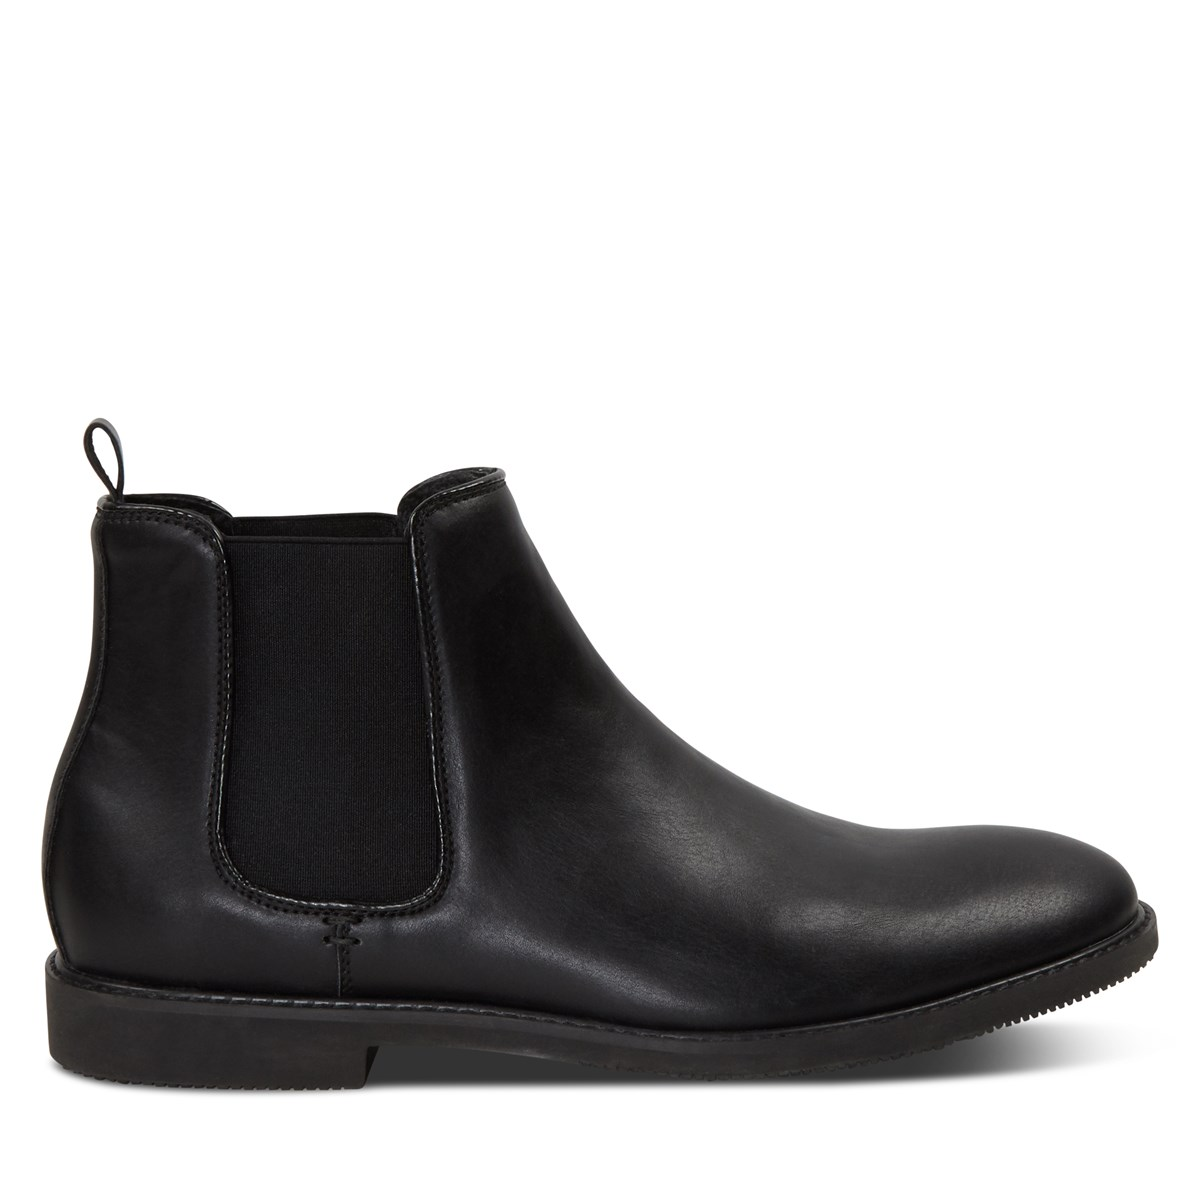 Men's Felix Chelsea Boots in Black